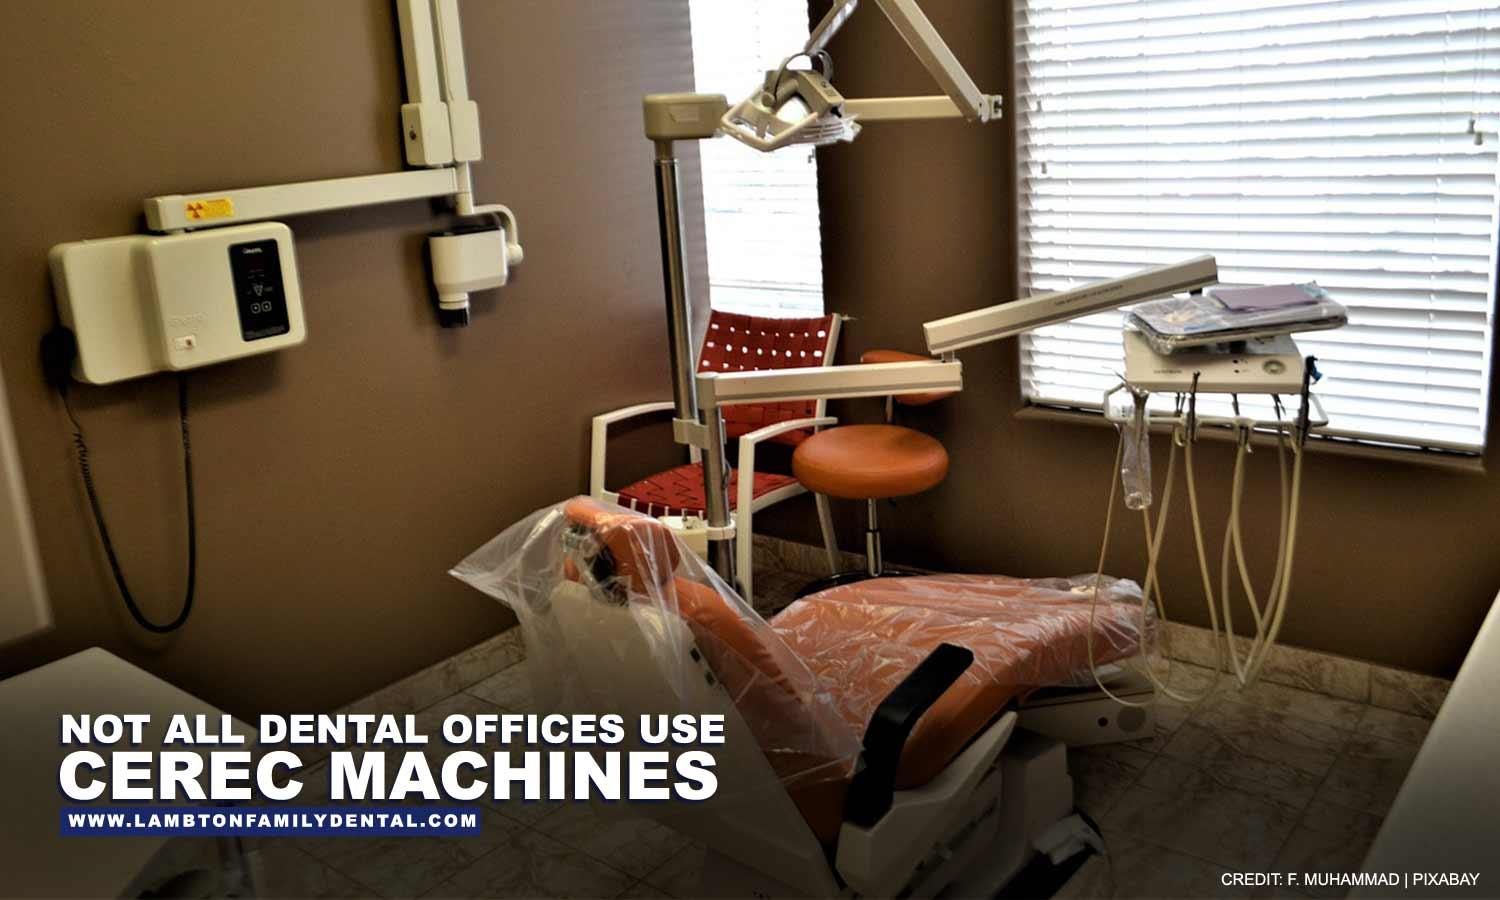 Not all dental offices use CEREC machines